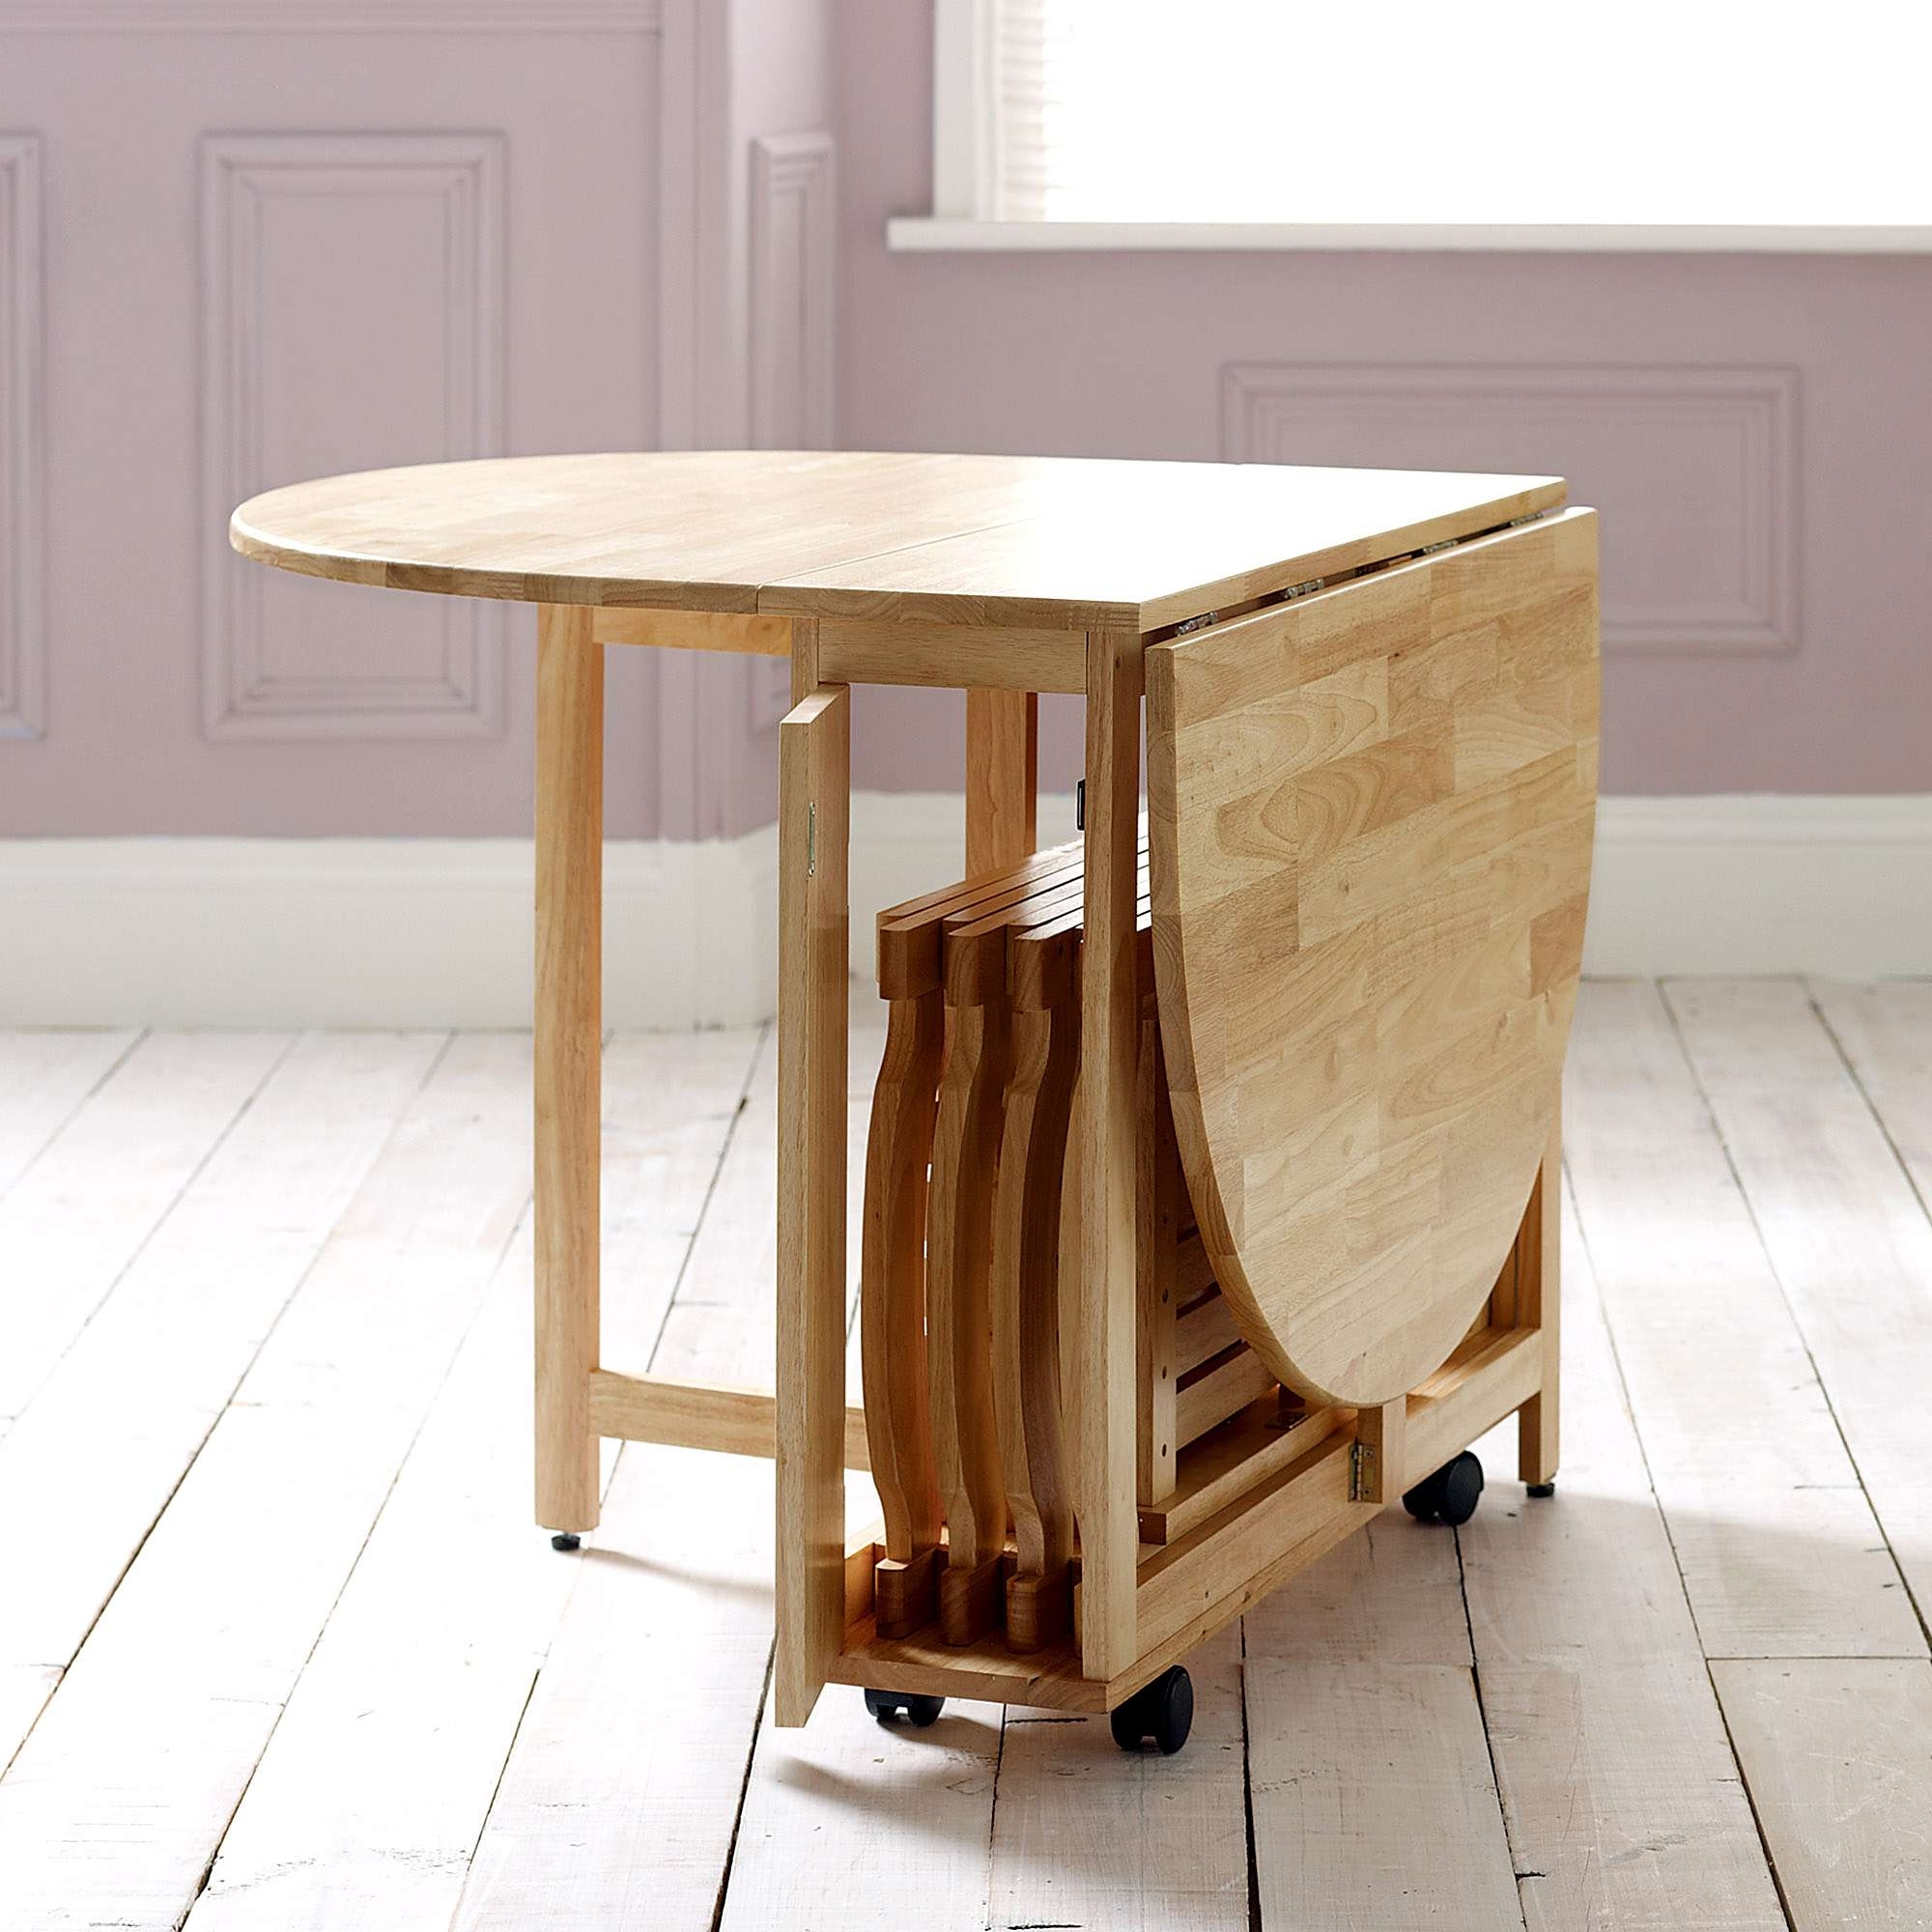 Choose A Folding Dining Table For A Small Space – Adorable Home Inside Most Recently Released Cheap Folding Dining Tables (View 11 of 25)